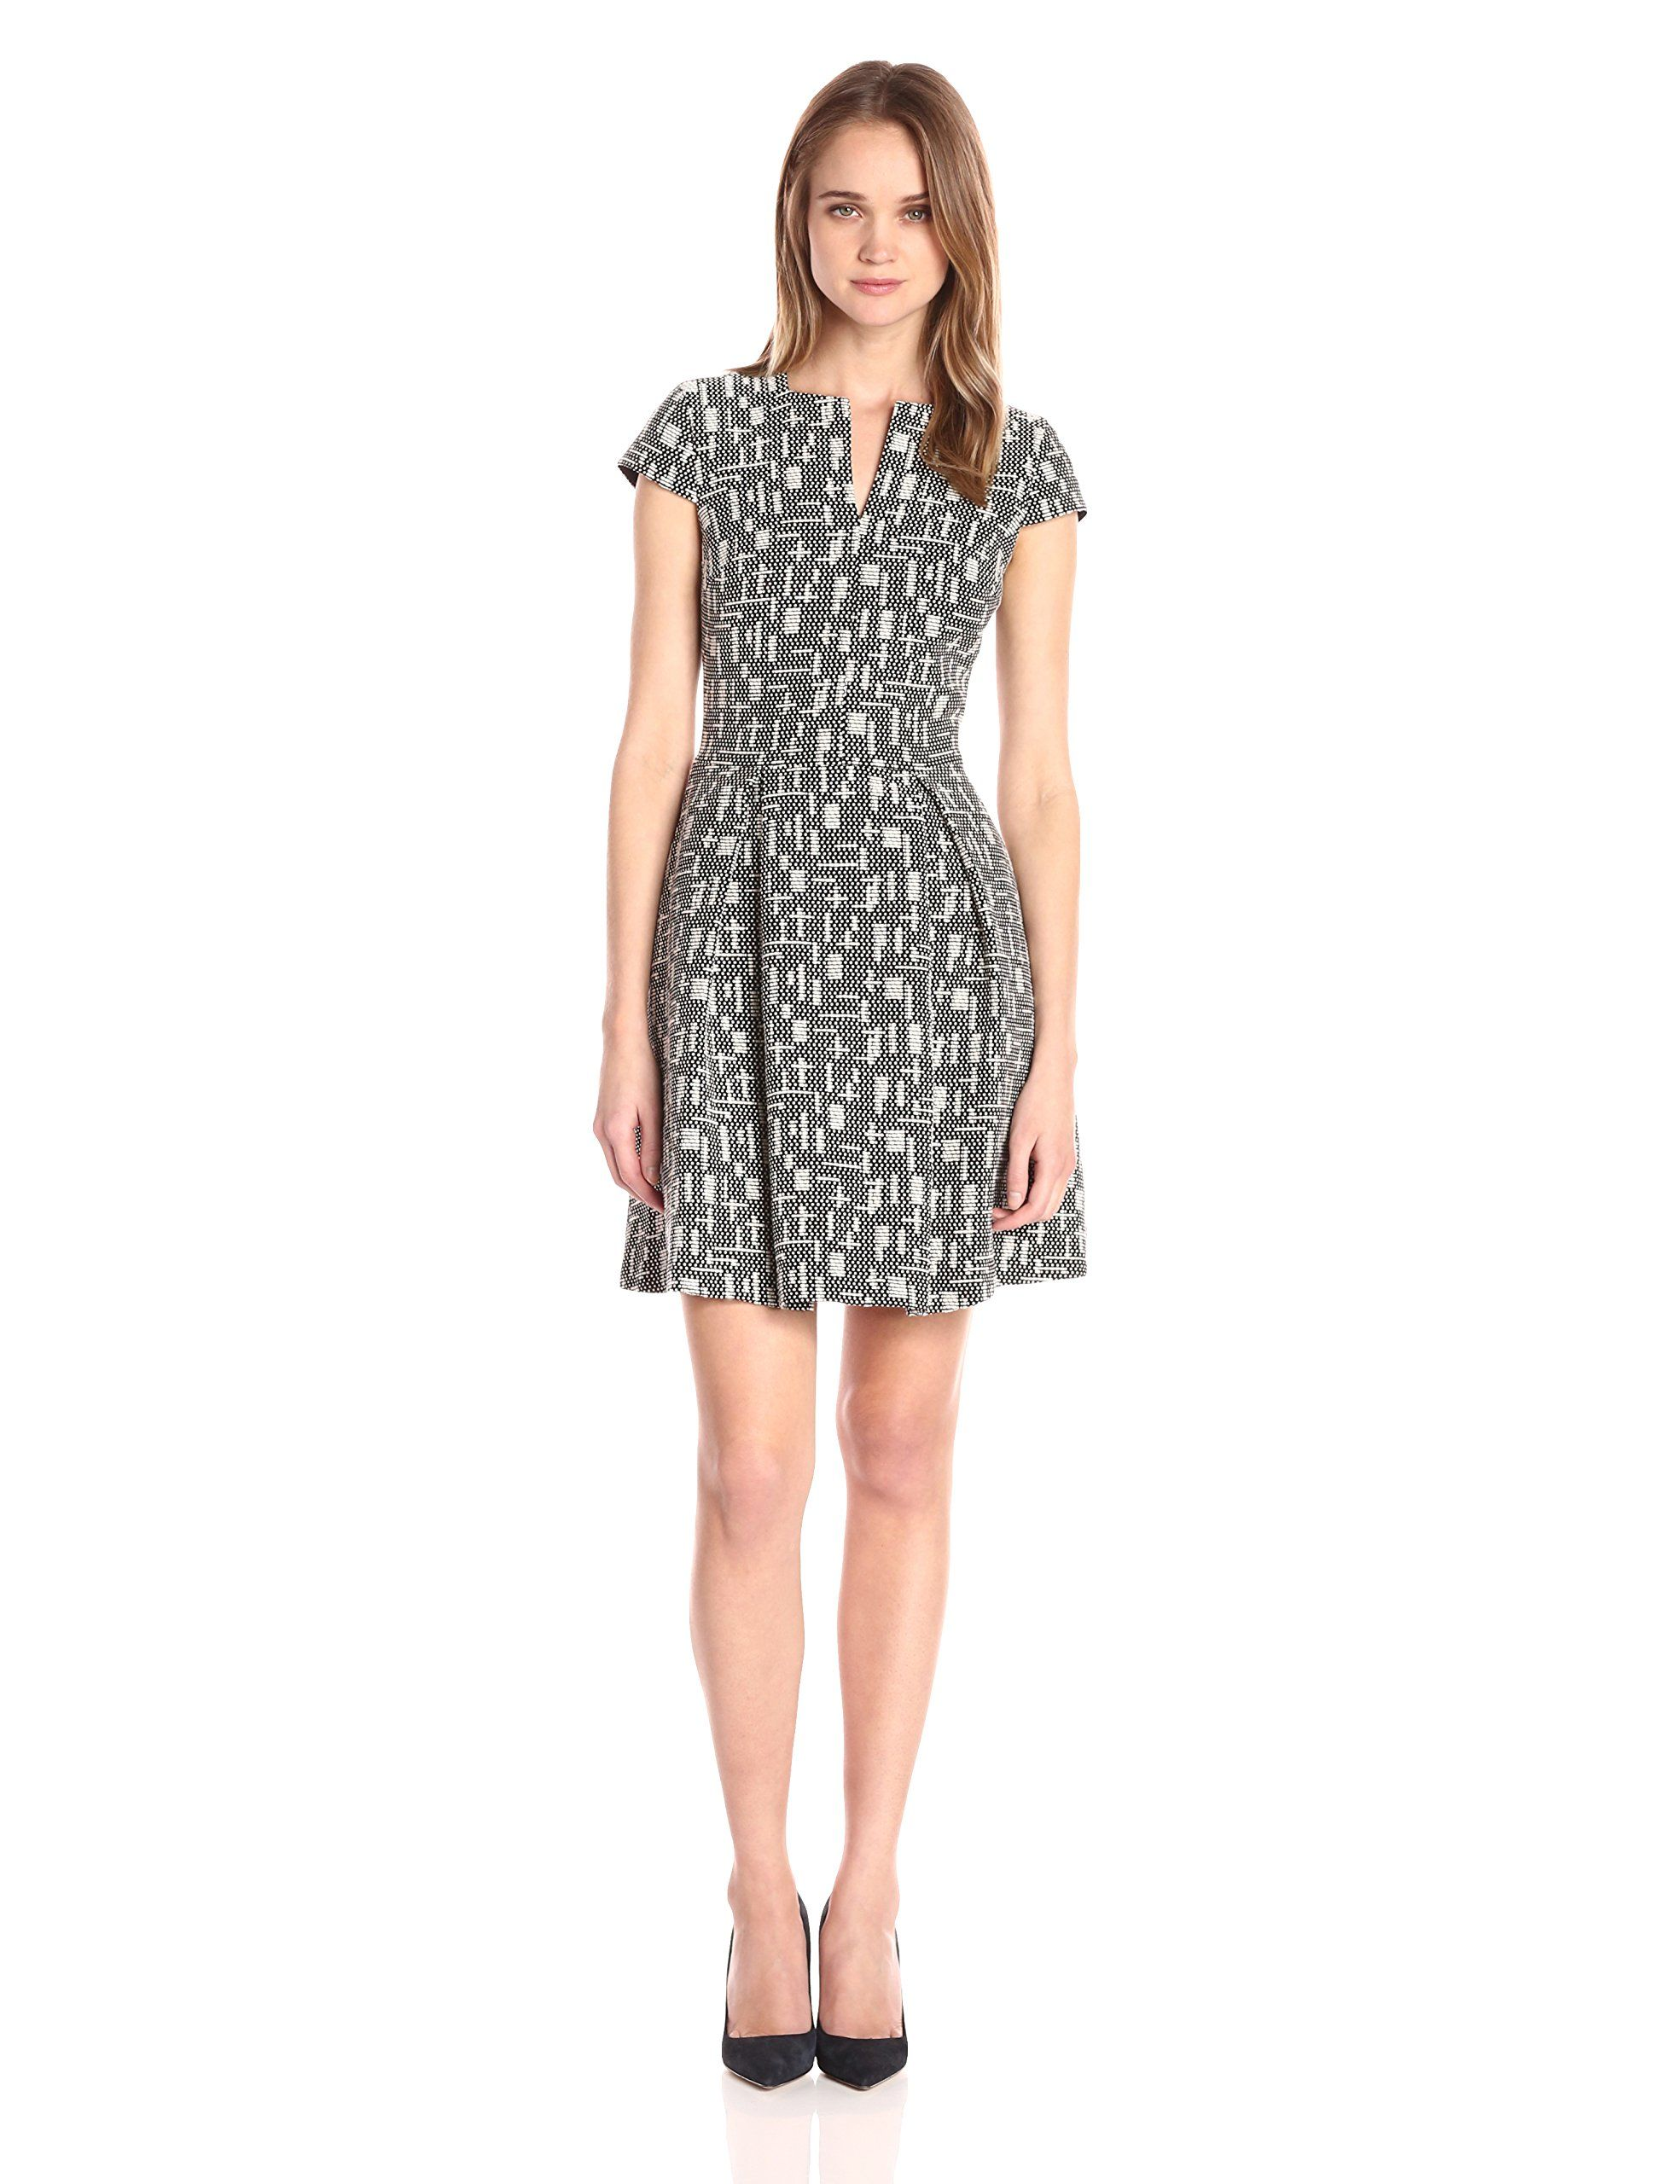 Ax armani exchange womenus short sleeve fit and flare dress black